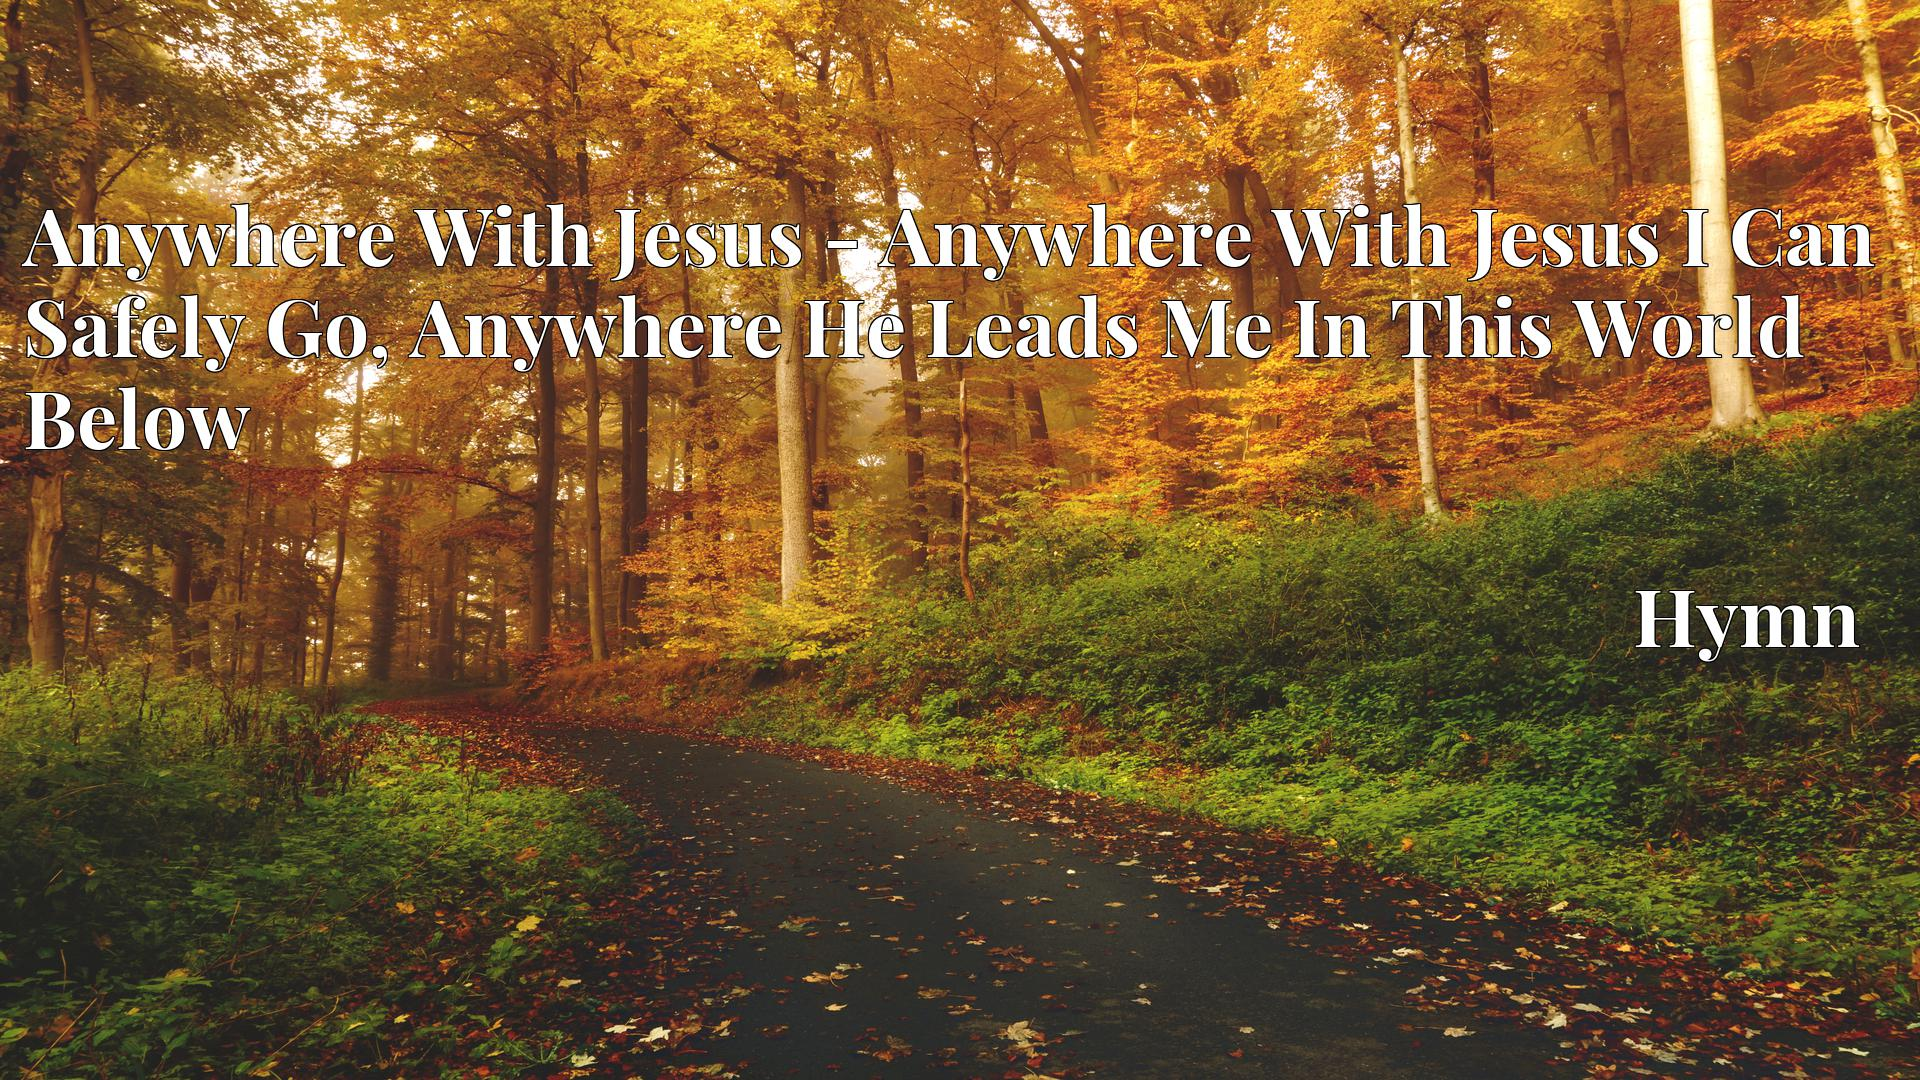 Anywhere With Jesus - Anywhere With Jesus I Can Safely Go, Anywhere He Leads Me In This World Below - Hymn